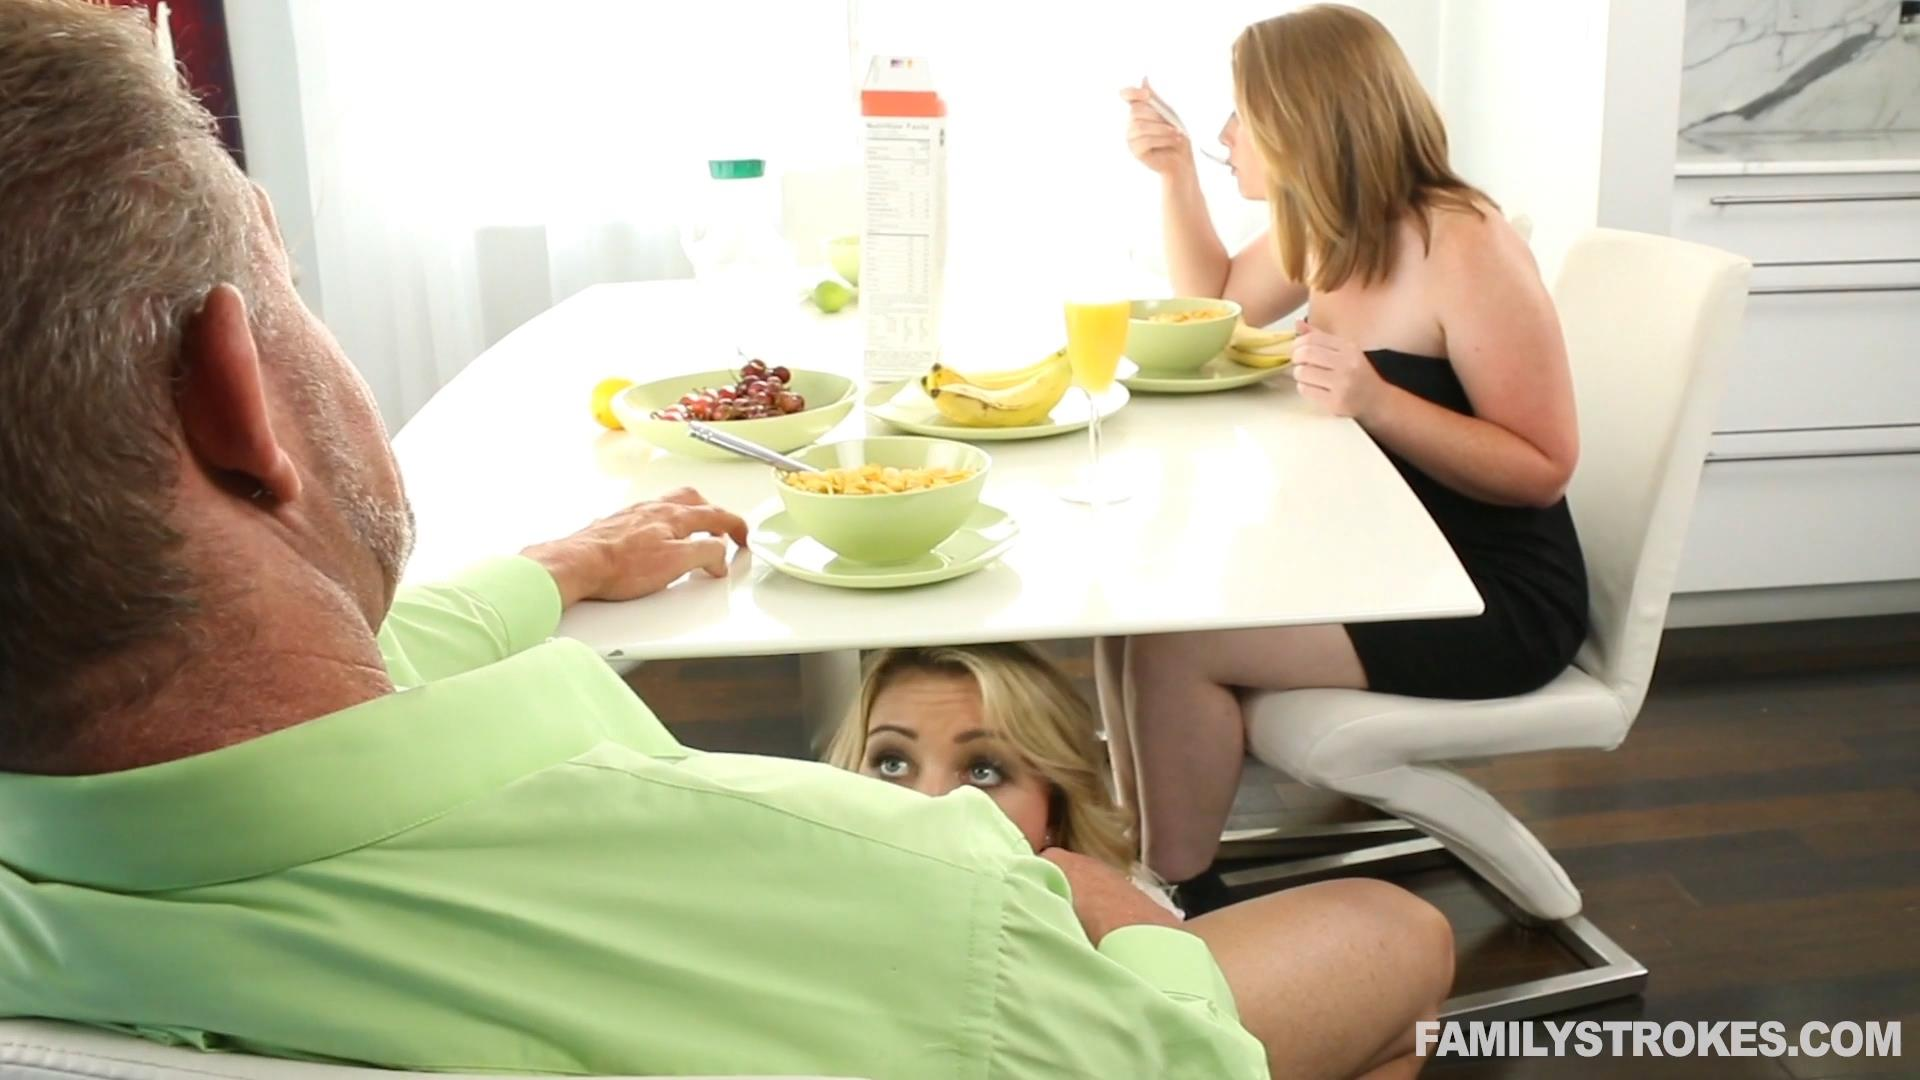 Familystrokes sucking cock to skip school